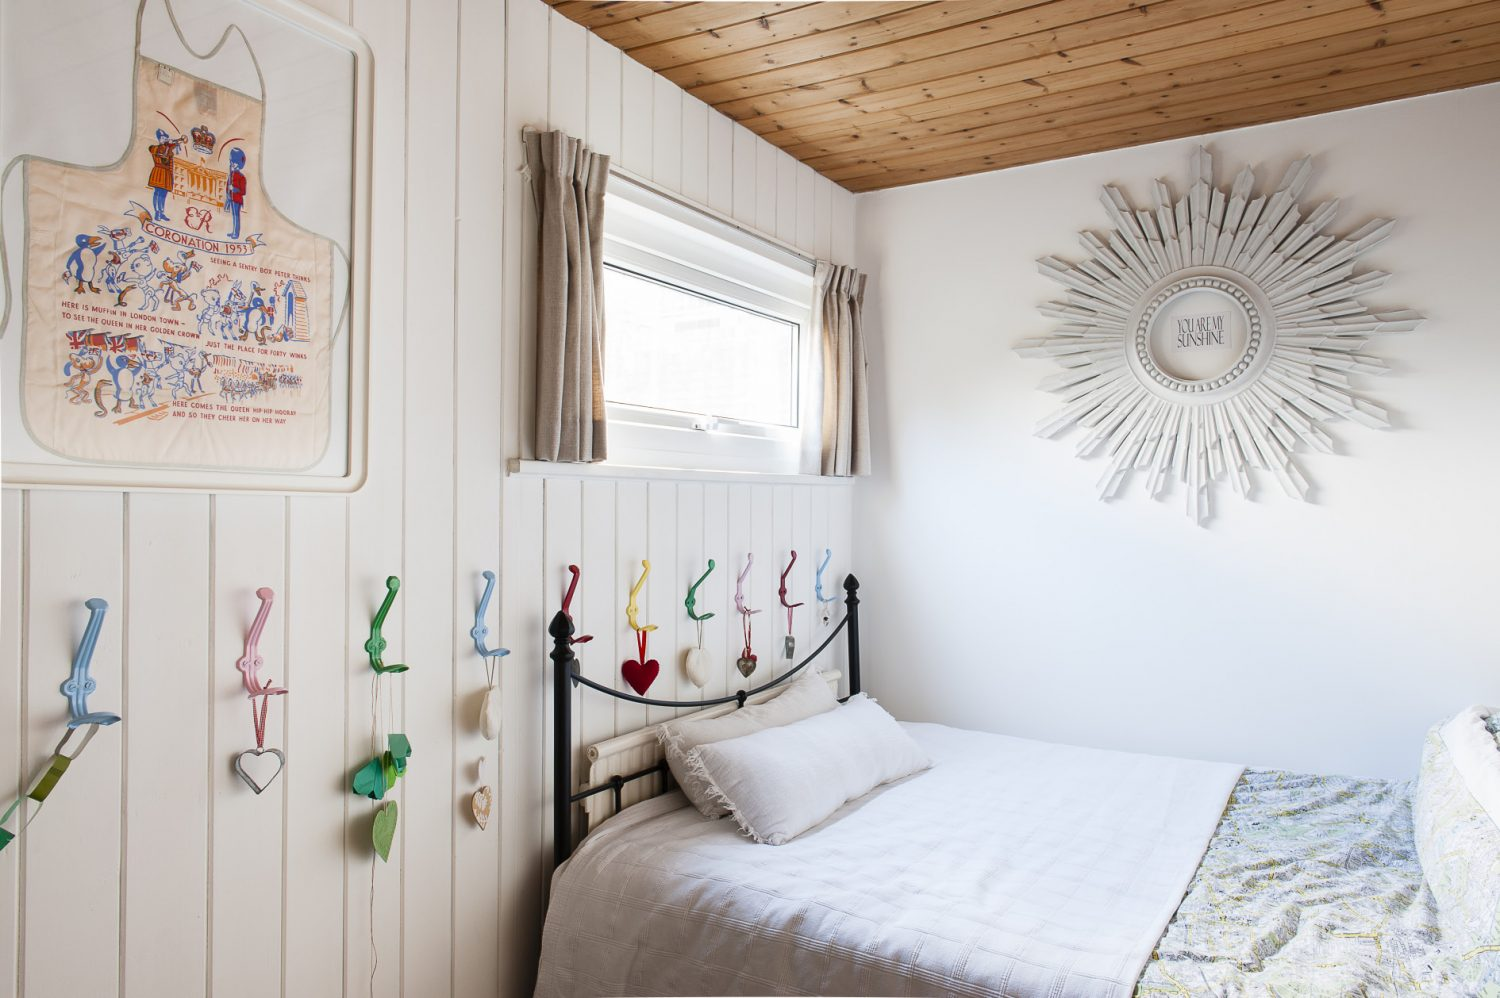 Sam has kept the decor in the smallest room of the house, the spare bedroom, simple by painting the panelled walls a brilliant white which offsets the colourful metal hooks, Ercol furniture and framed commemorative children's aprons perfectly